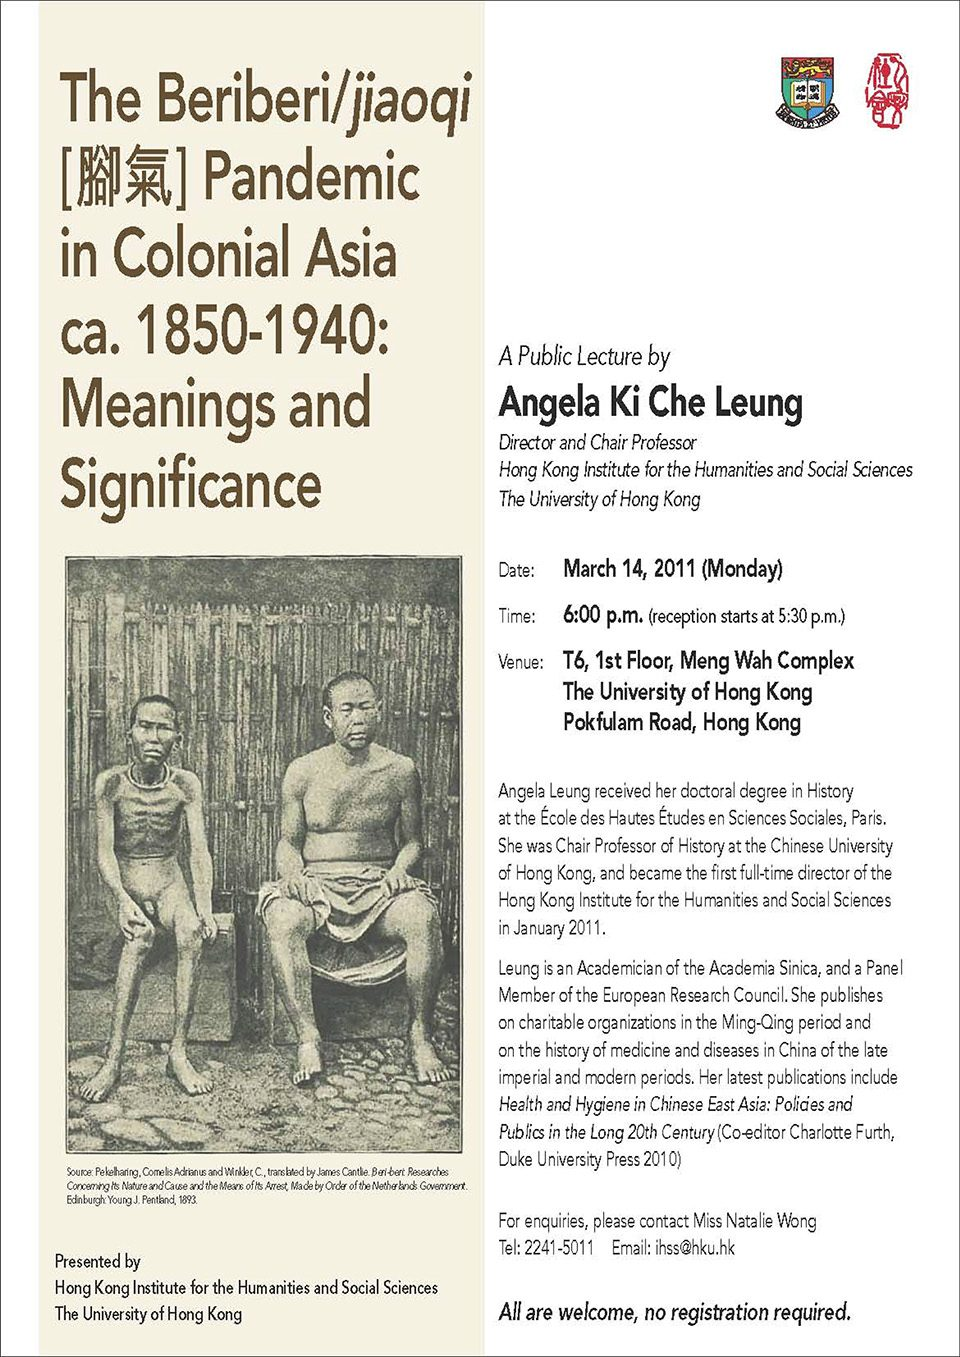 """Public Lecture on """"The Beriberi/jiaoqi (腳氣) Pandemic in Colonial Asia (ca.1840-1940): Meanings and Significance"""" by Professor Angela Ki Che Leung (March 14, 2011)"""